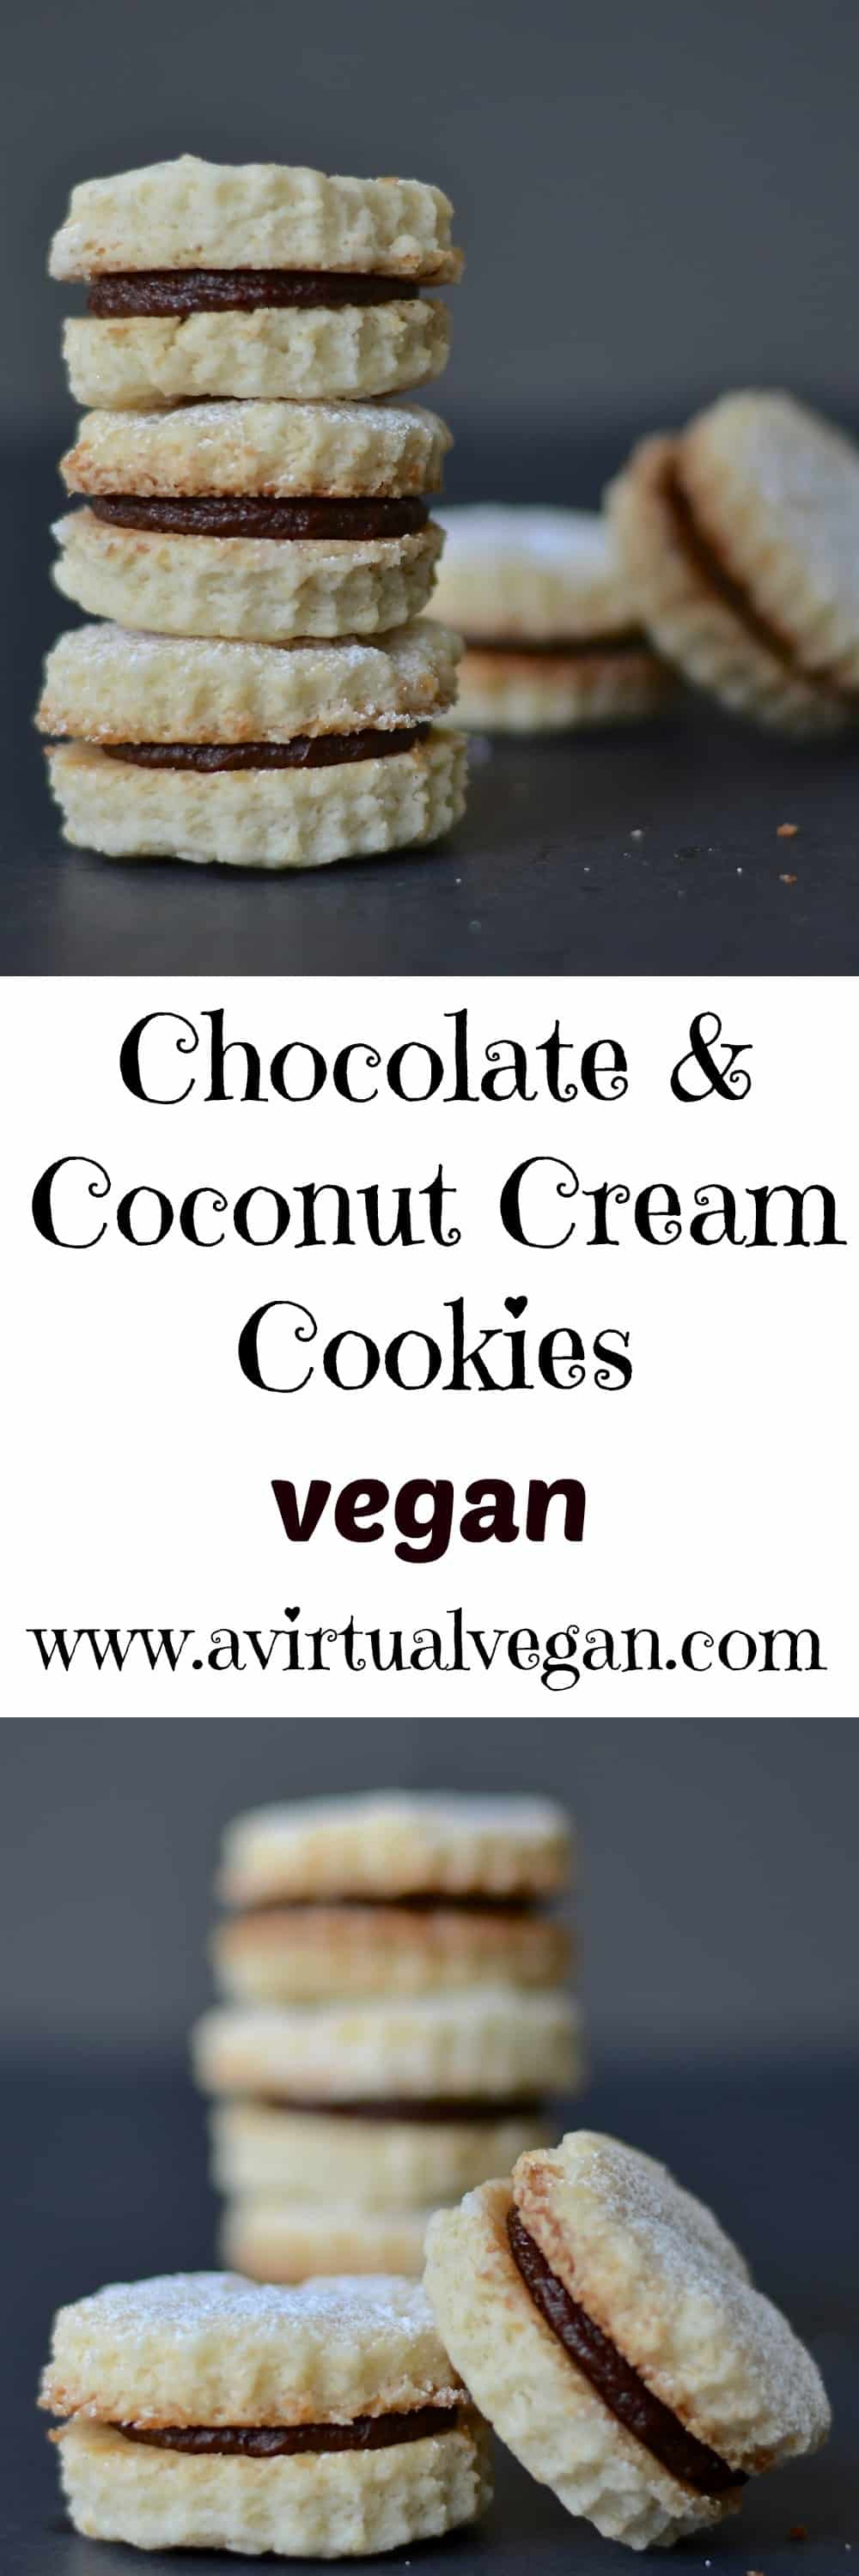 Melt in the mouth coconut cookies sandwiched together with a rich chocolate & coconut cream. Little morsels of deliciousness that taste like way more effort went into making them than it actually did!